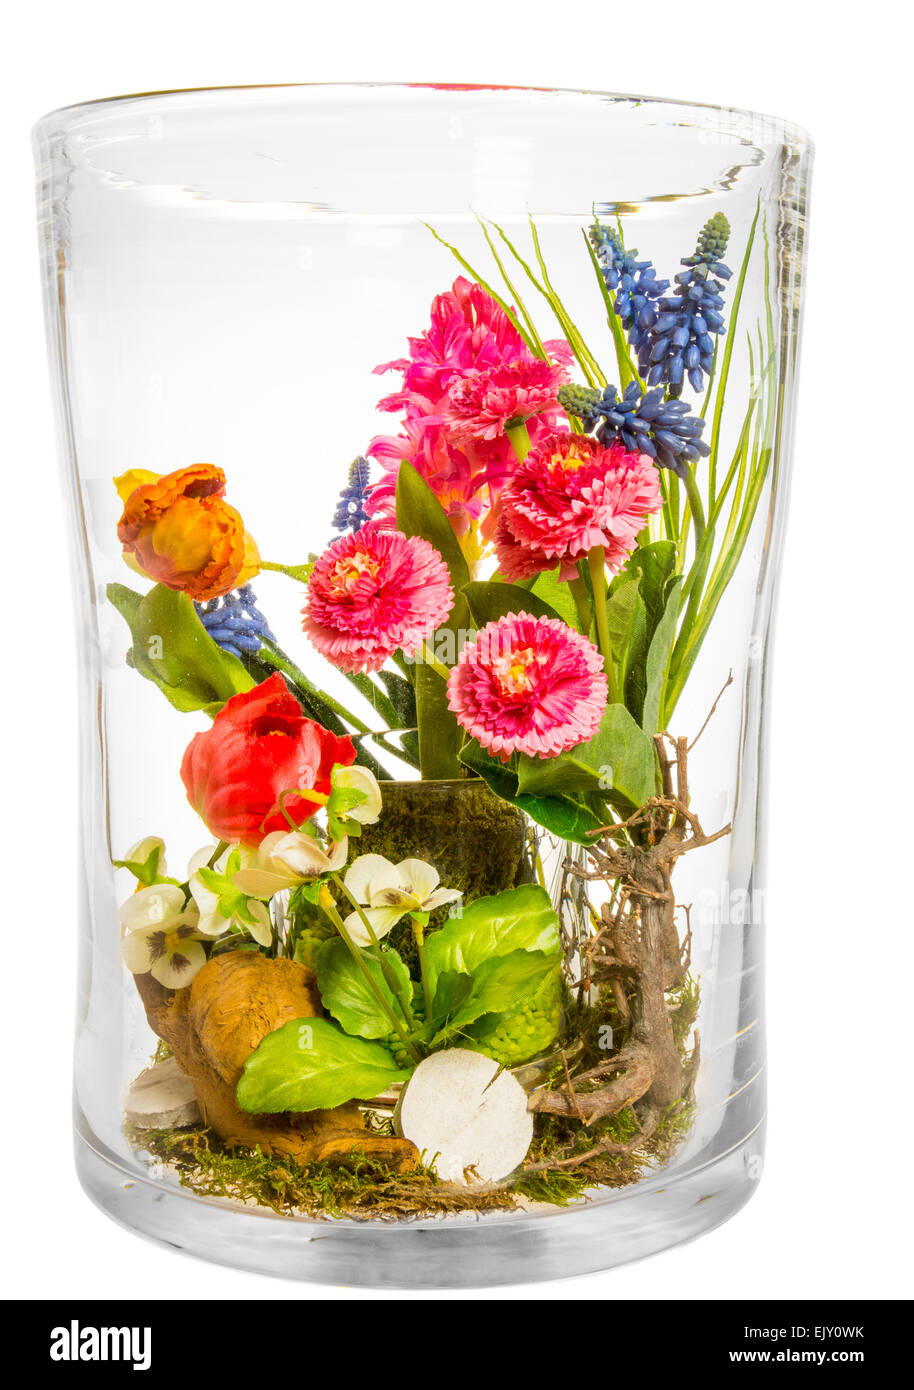 Bouquet Of Artificial Flowers Made Of Plastic In A Big Glass Vase Stock Photo Alamy